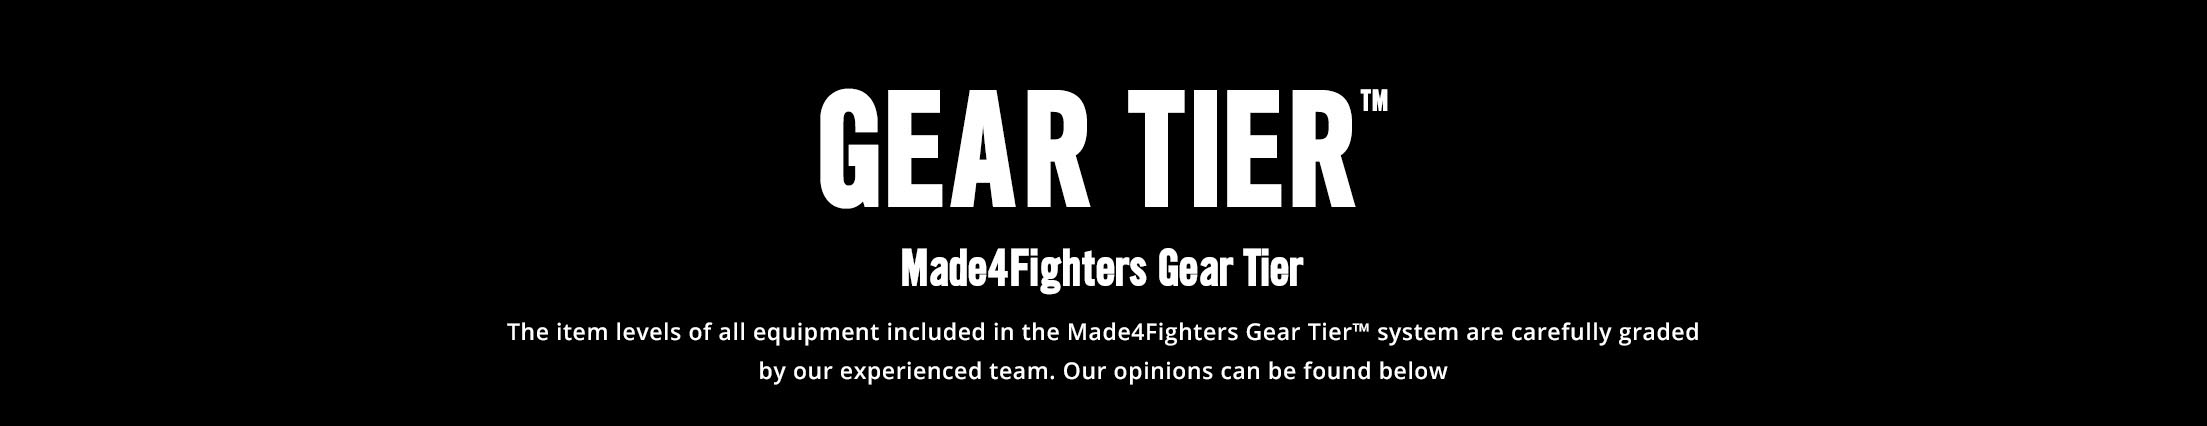 Made4Fighters Gear Tier